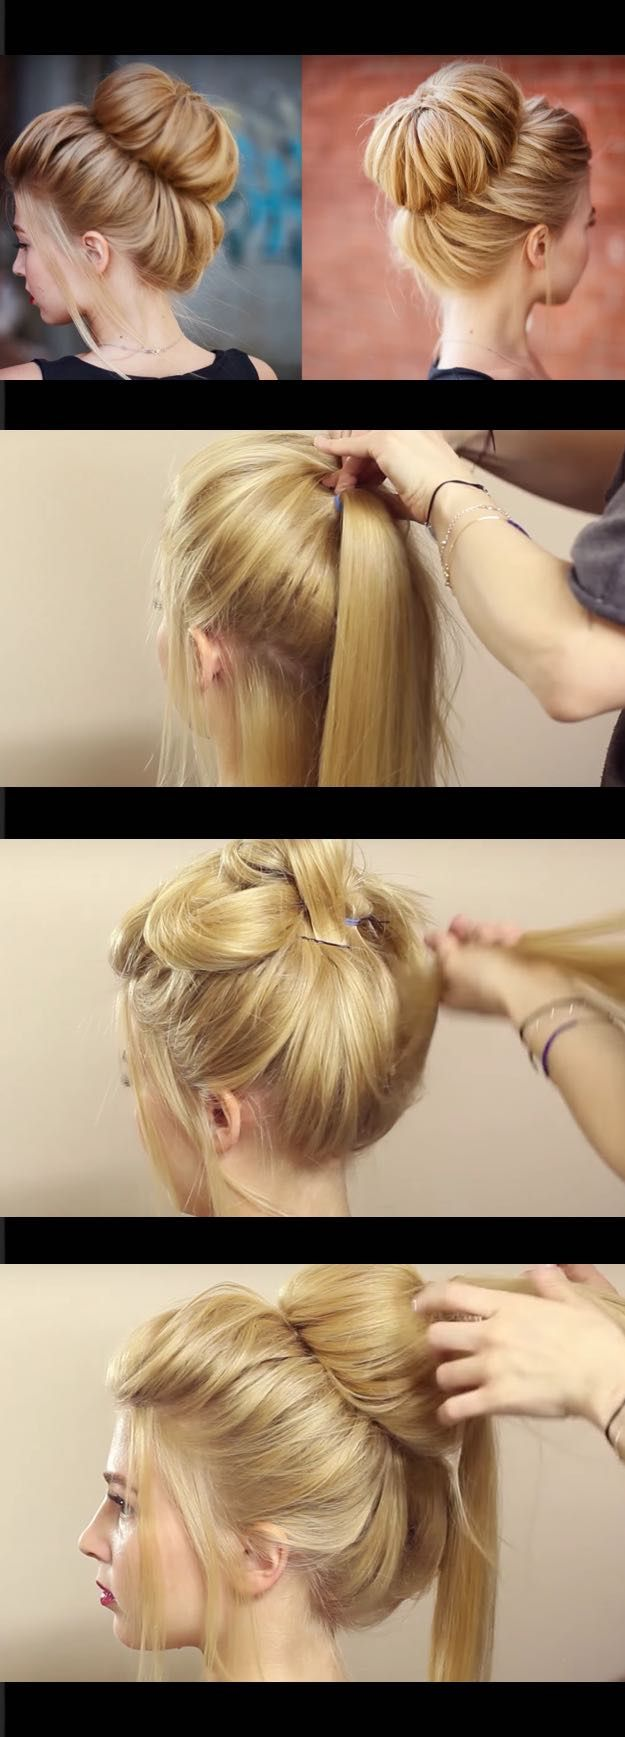 Quick and Easy Hairstyles for Straight Hair - Chic textured bun updo for prom wedding - Popular Haircuts and Simple Step By Step Tutorials and Ideas for Half Up, Short Bobs, Long Hair, Medium Lengths Hair, Braids, Pony Tails, Messy Buns, And Ideas For Tools Like Flat Irons and Bobby Pins. These Work For Blondes, Brunettes, Twists, and Beachy Waves - https://www.thegoddess.com/easy-hairstyles-straight-hair